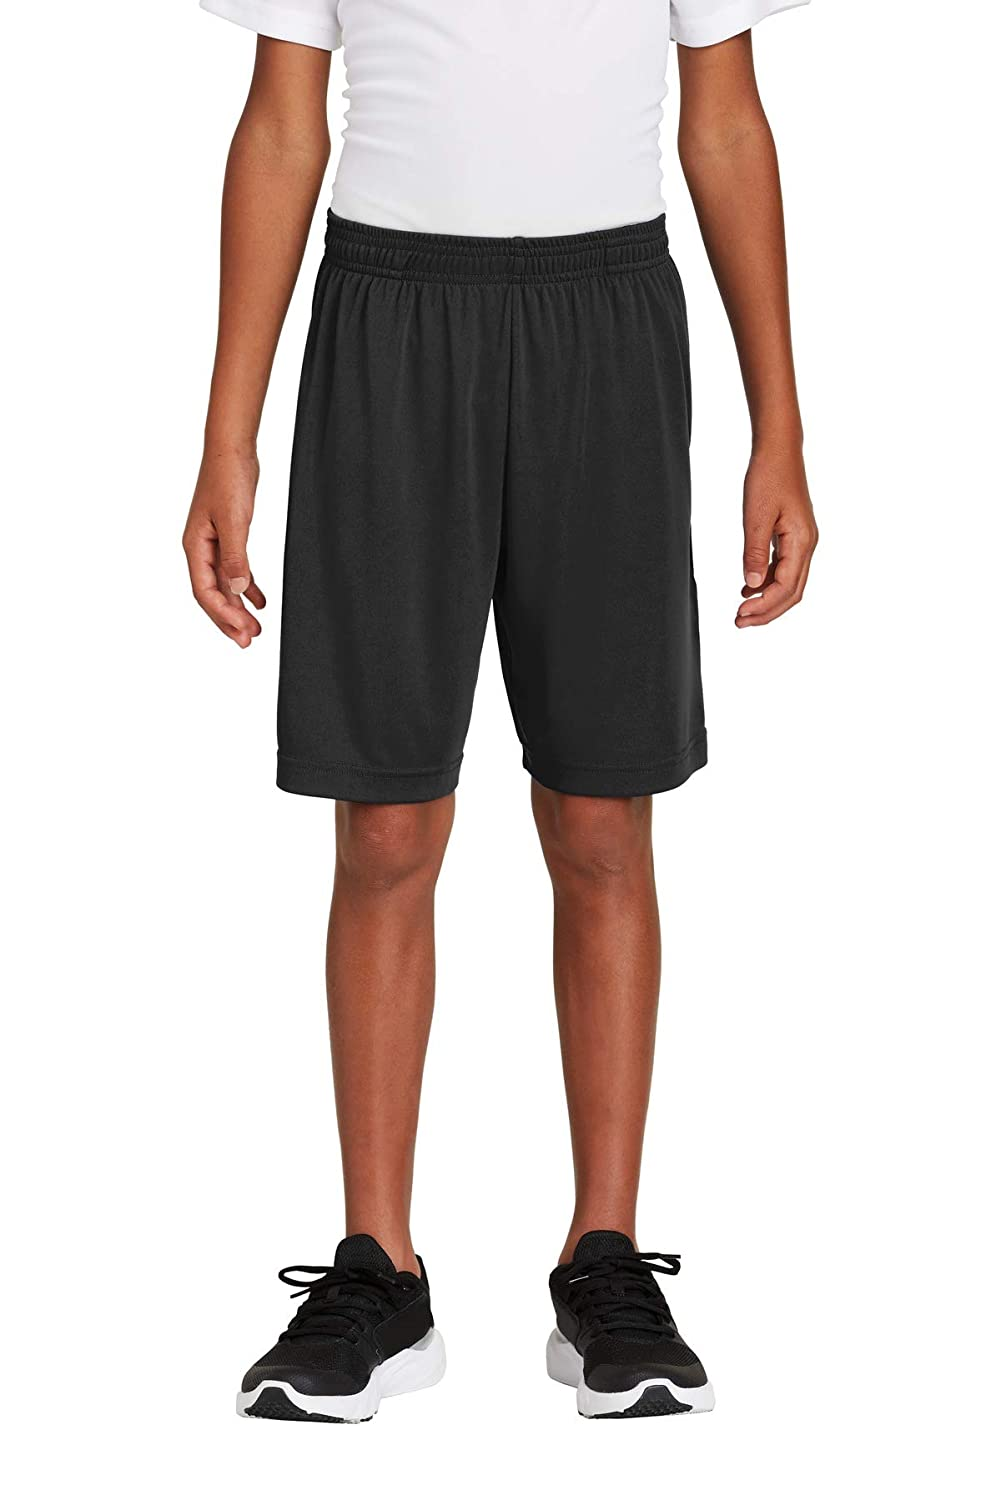 Sport-Tek 174 Youth PosiCharge 174 Competitor 153 Pocketed Short YST355P Large Black